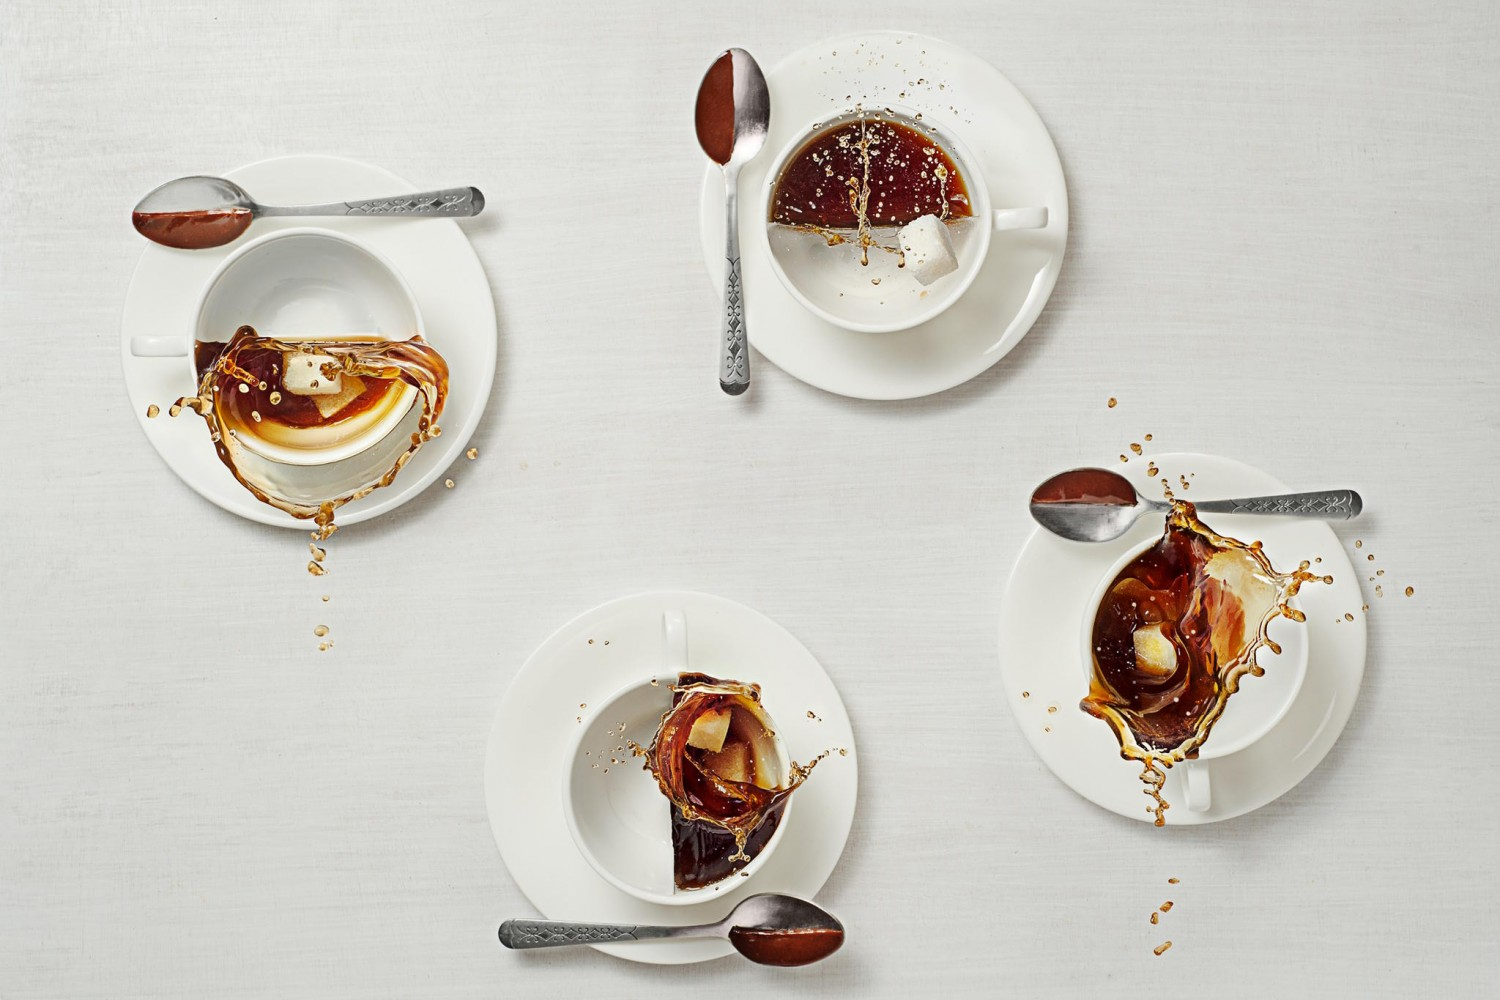 How To Bring Coffee To Life With Half-Splash Photography